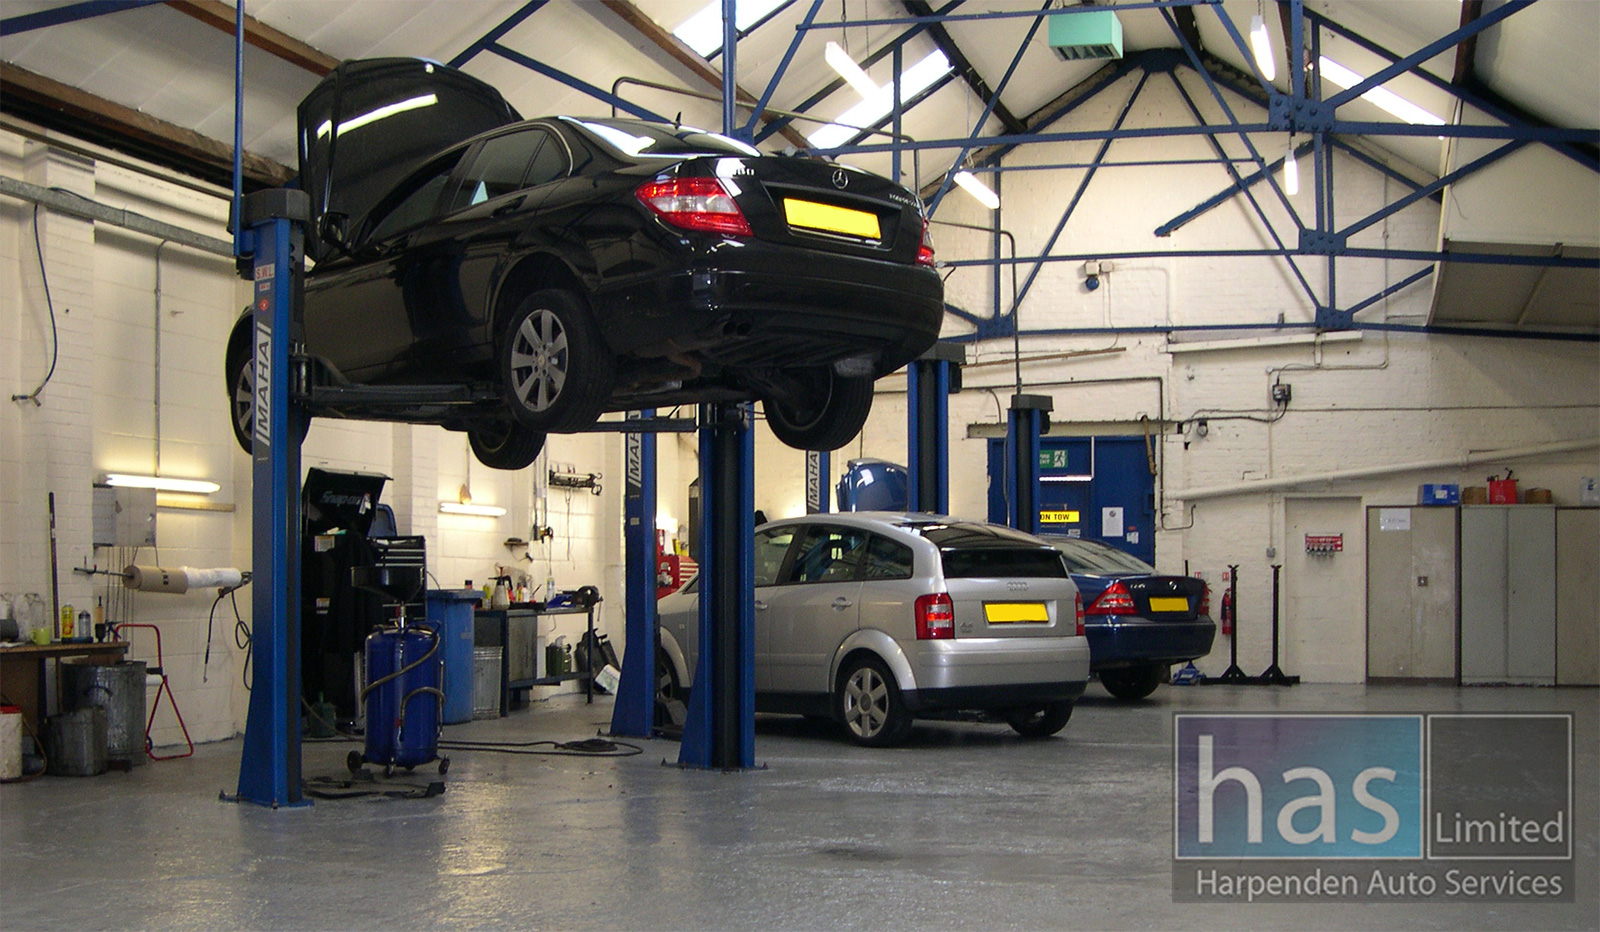 harpenden auto services limited workshop area